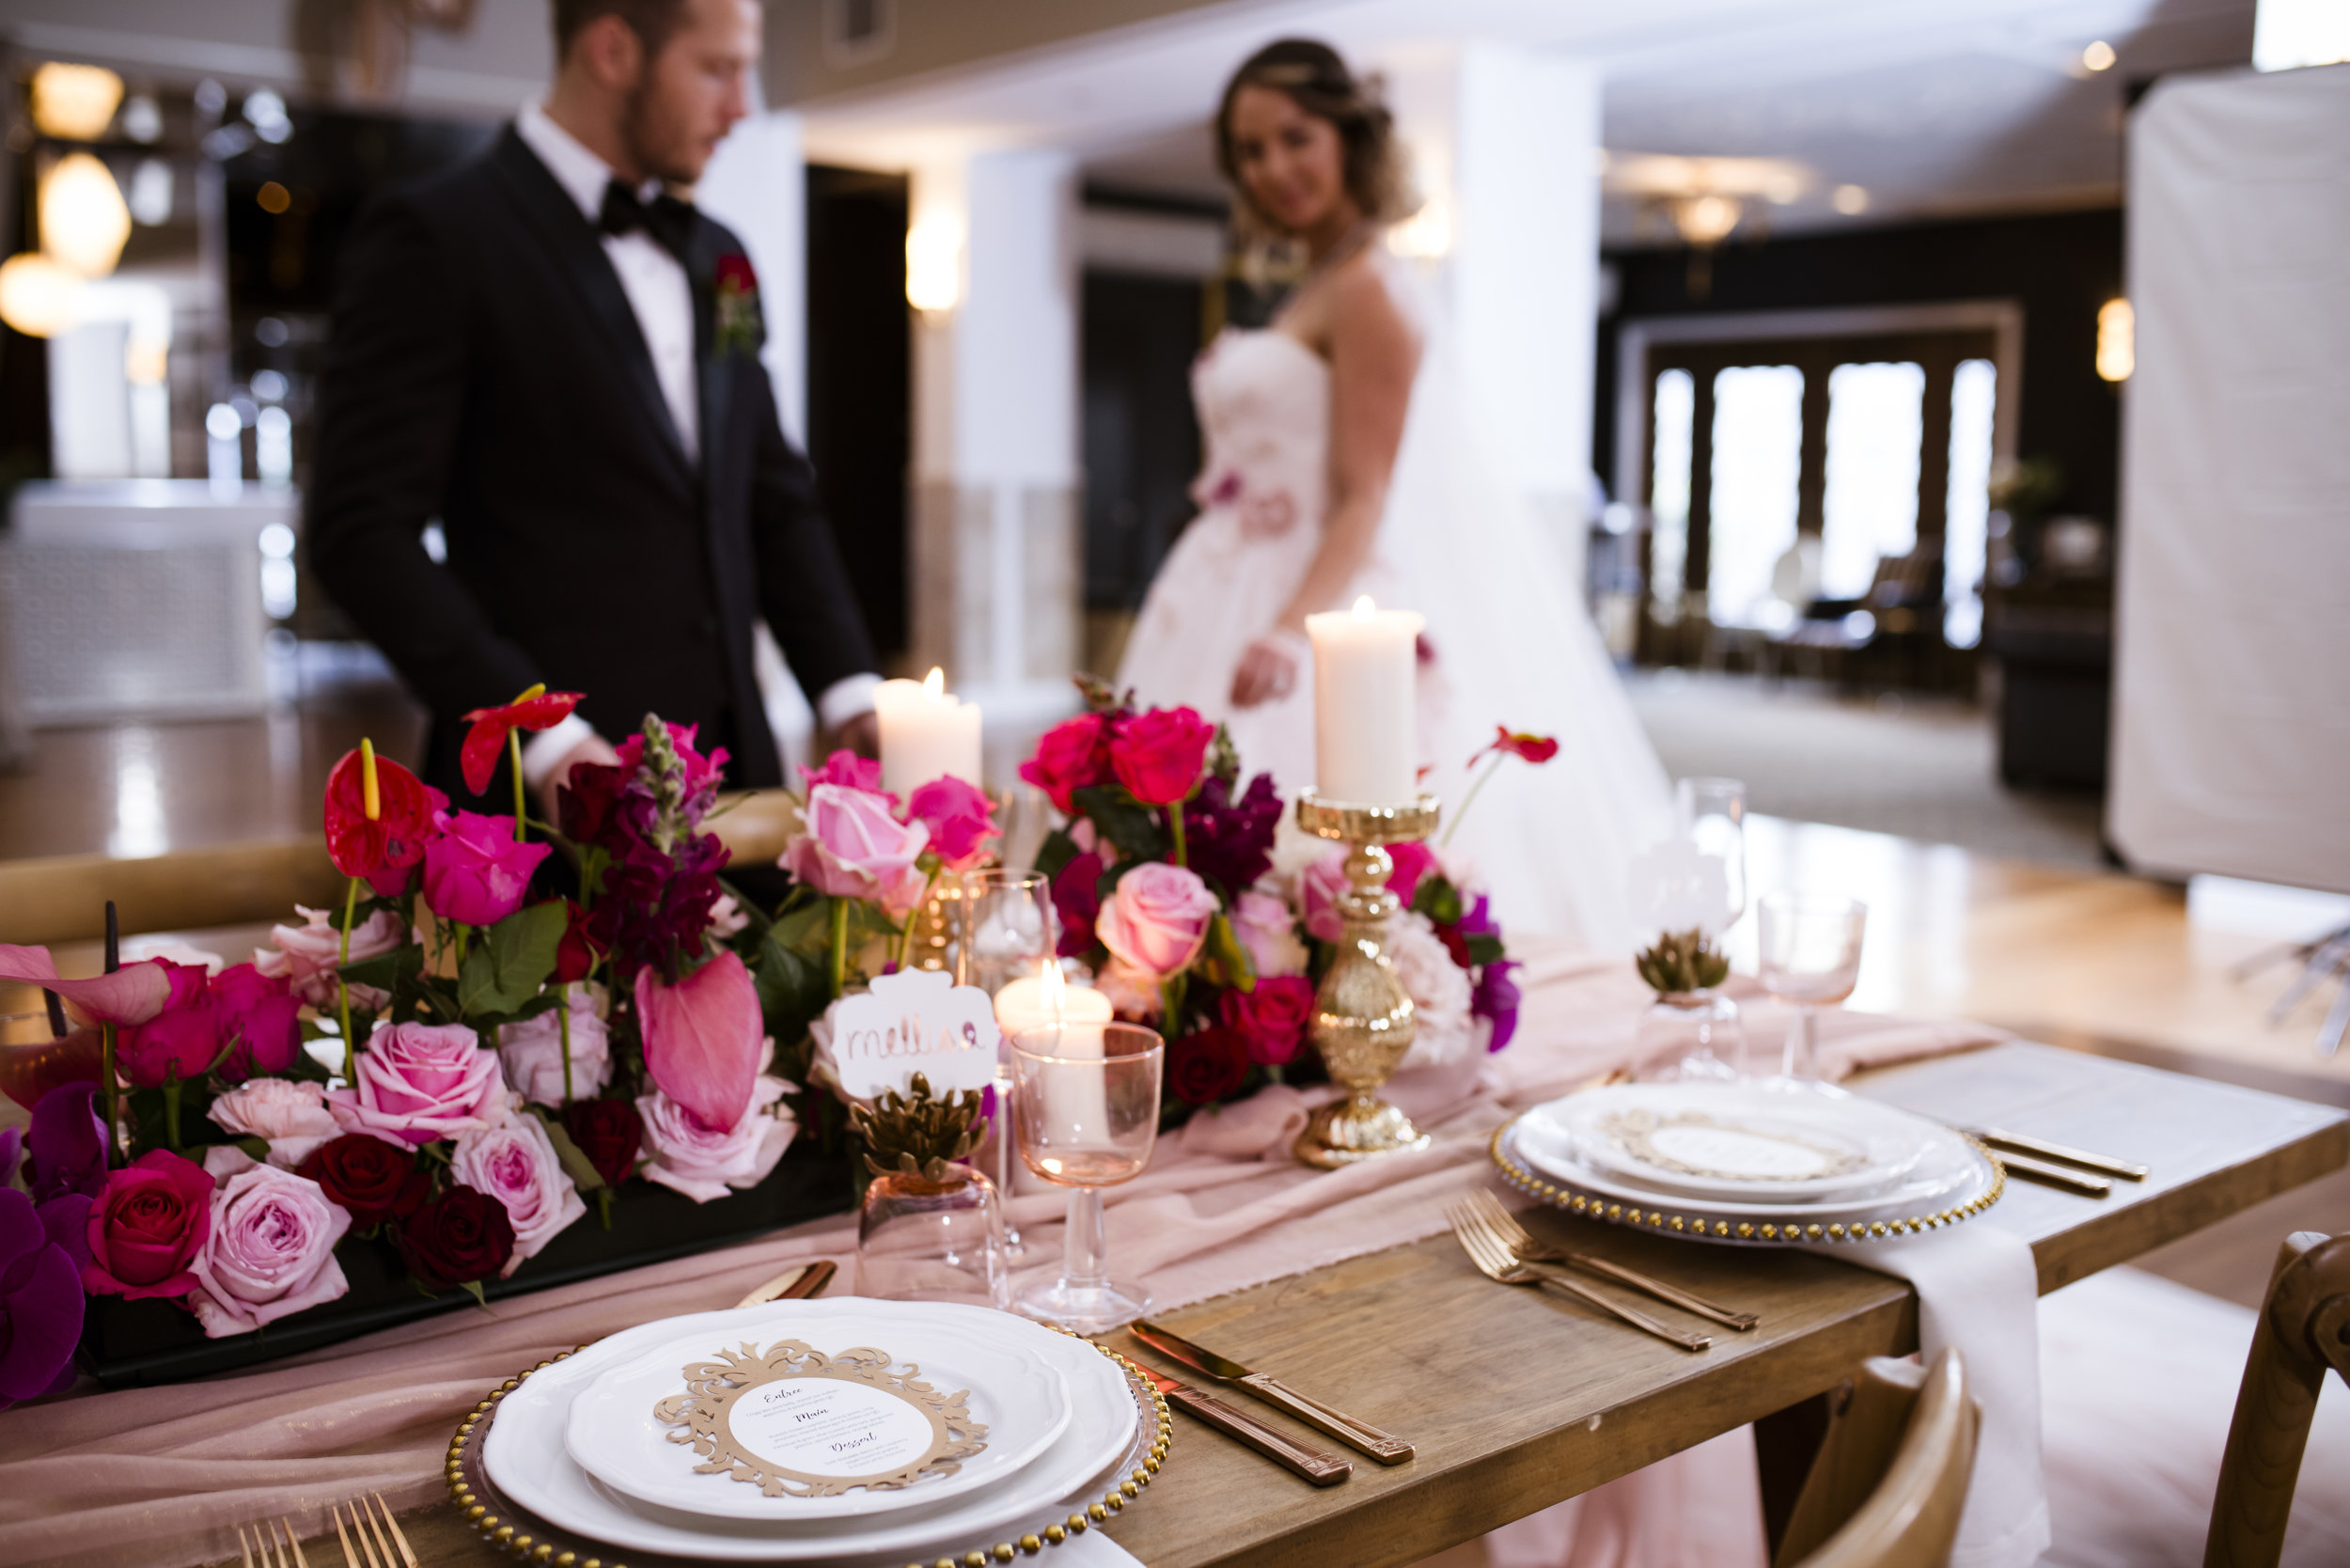 A Queensland Mirra Wedding - Moody Romantic Pink and Red Wedding -- Wedding Blog - The Overwhelmed Bride